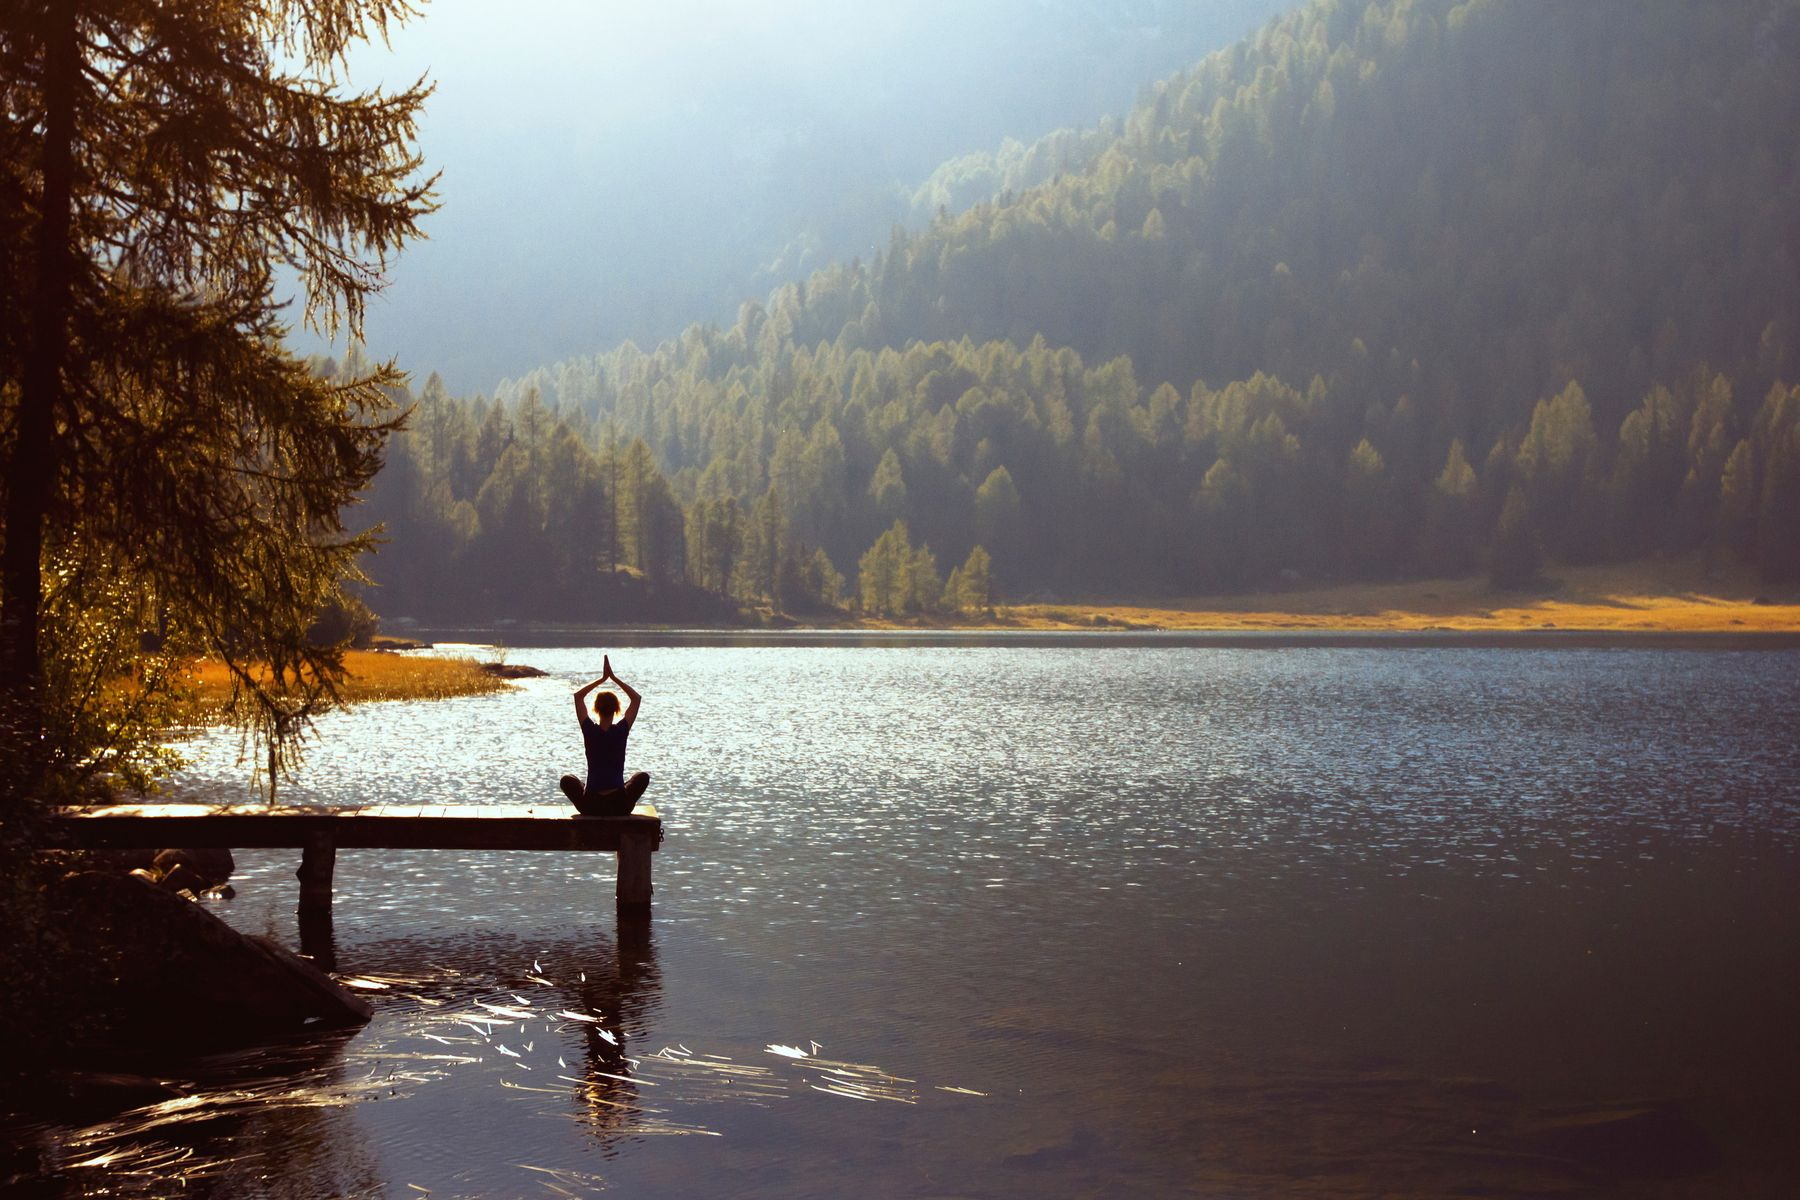 a lake and mountain view with a person doing a yoga pose from a distance